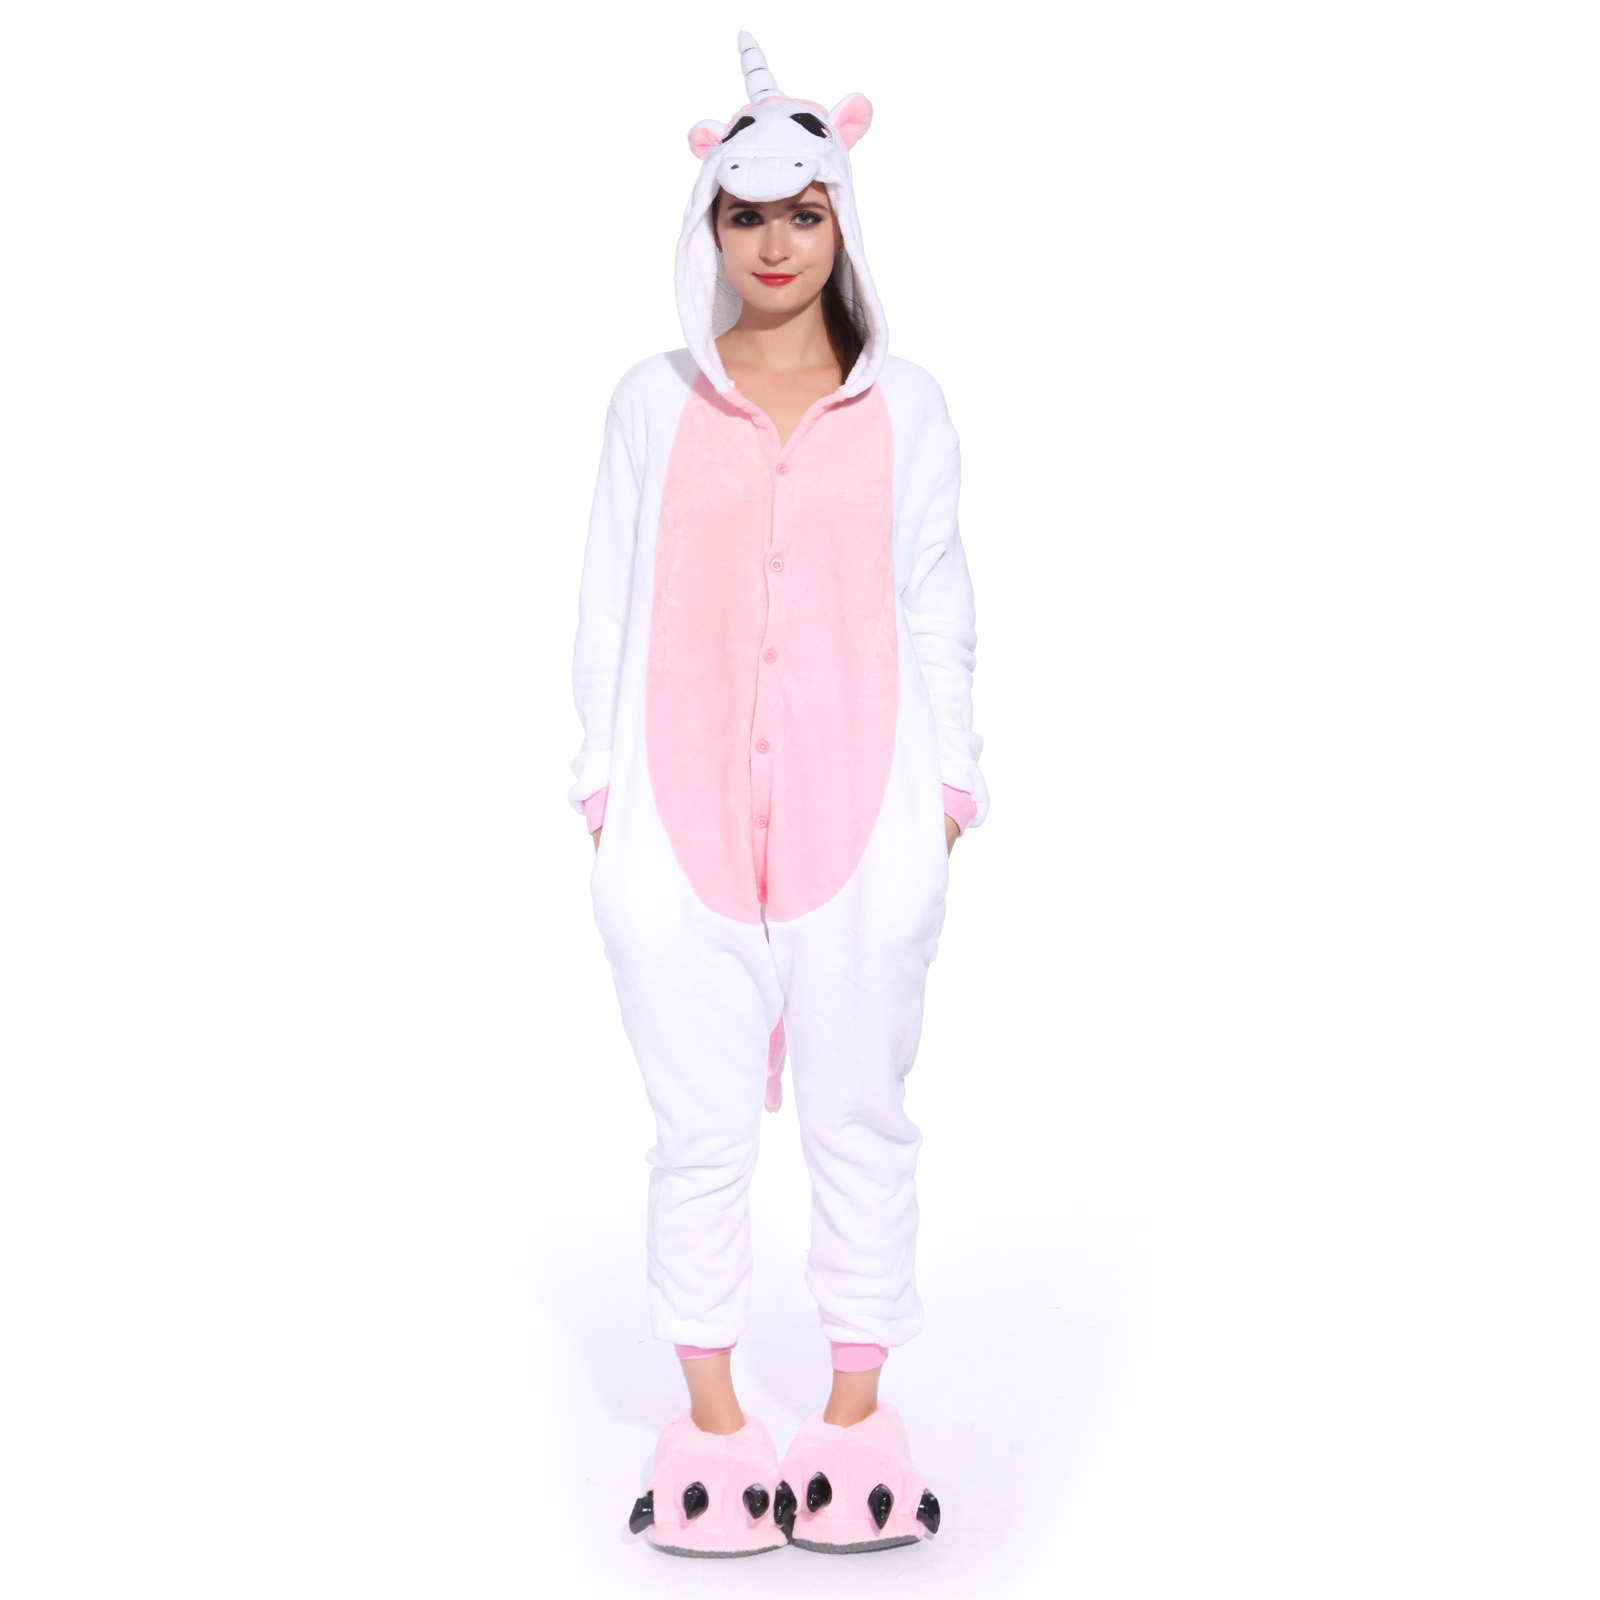 costume pyjama femme pyjama femme homme combinaison animaux deguisement. Black Bedroom Furniture Sets. Home Design Ideas